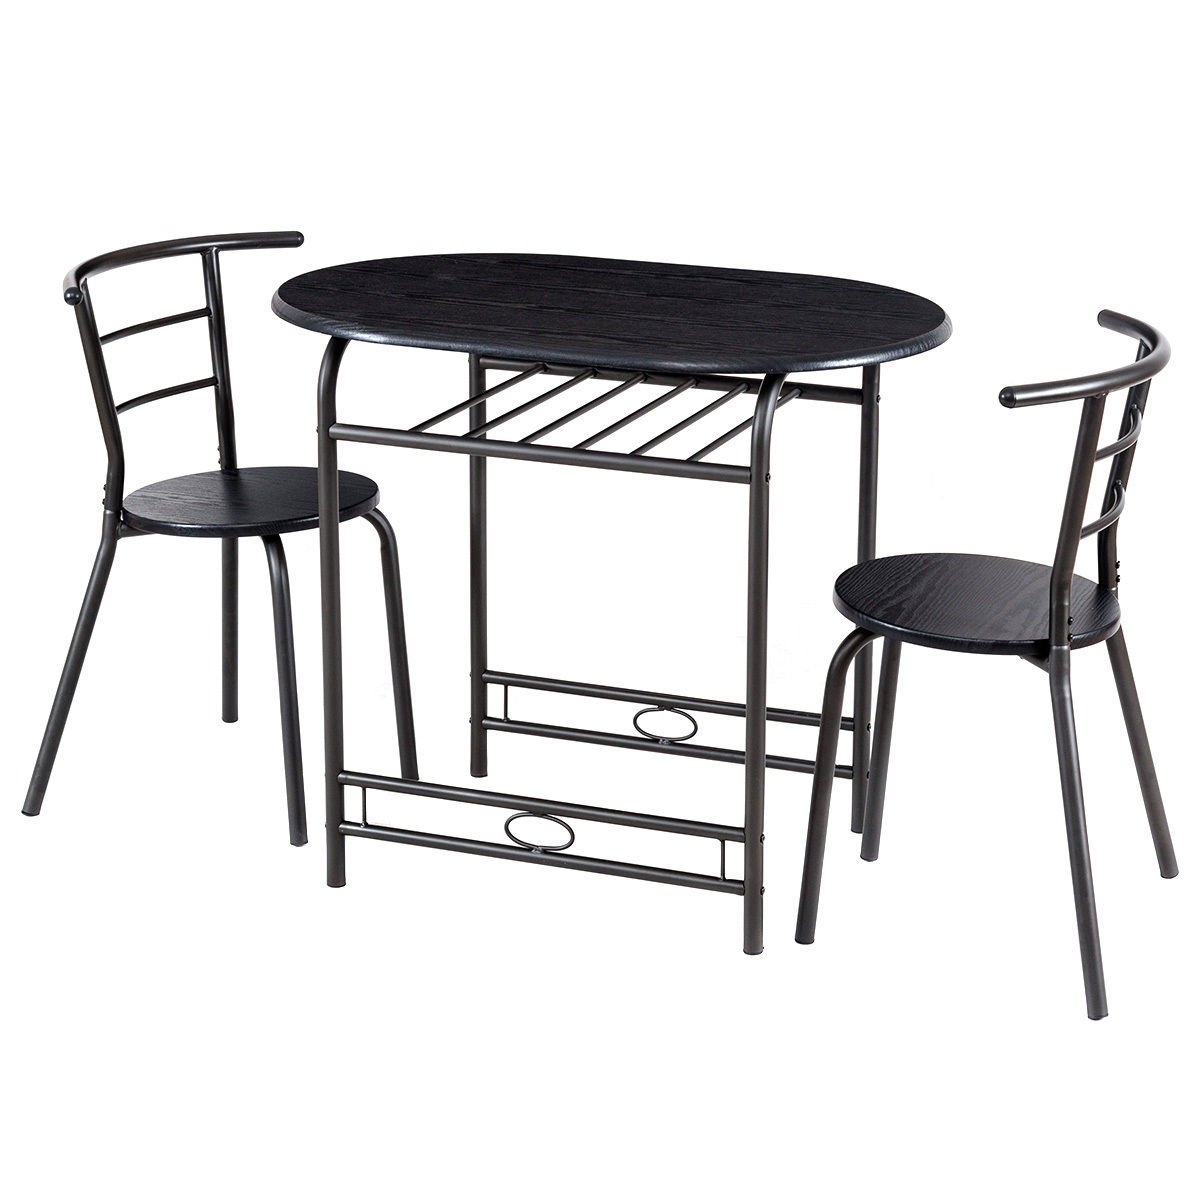 Dining Set Table and 2 Chairs Home Kitchen Breakfast Bistro Pub Furniture Black